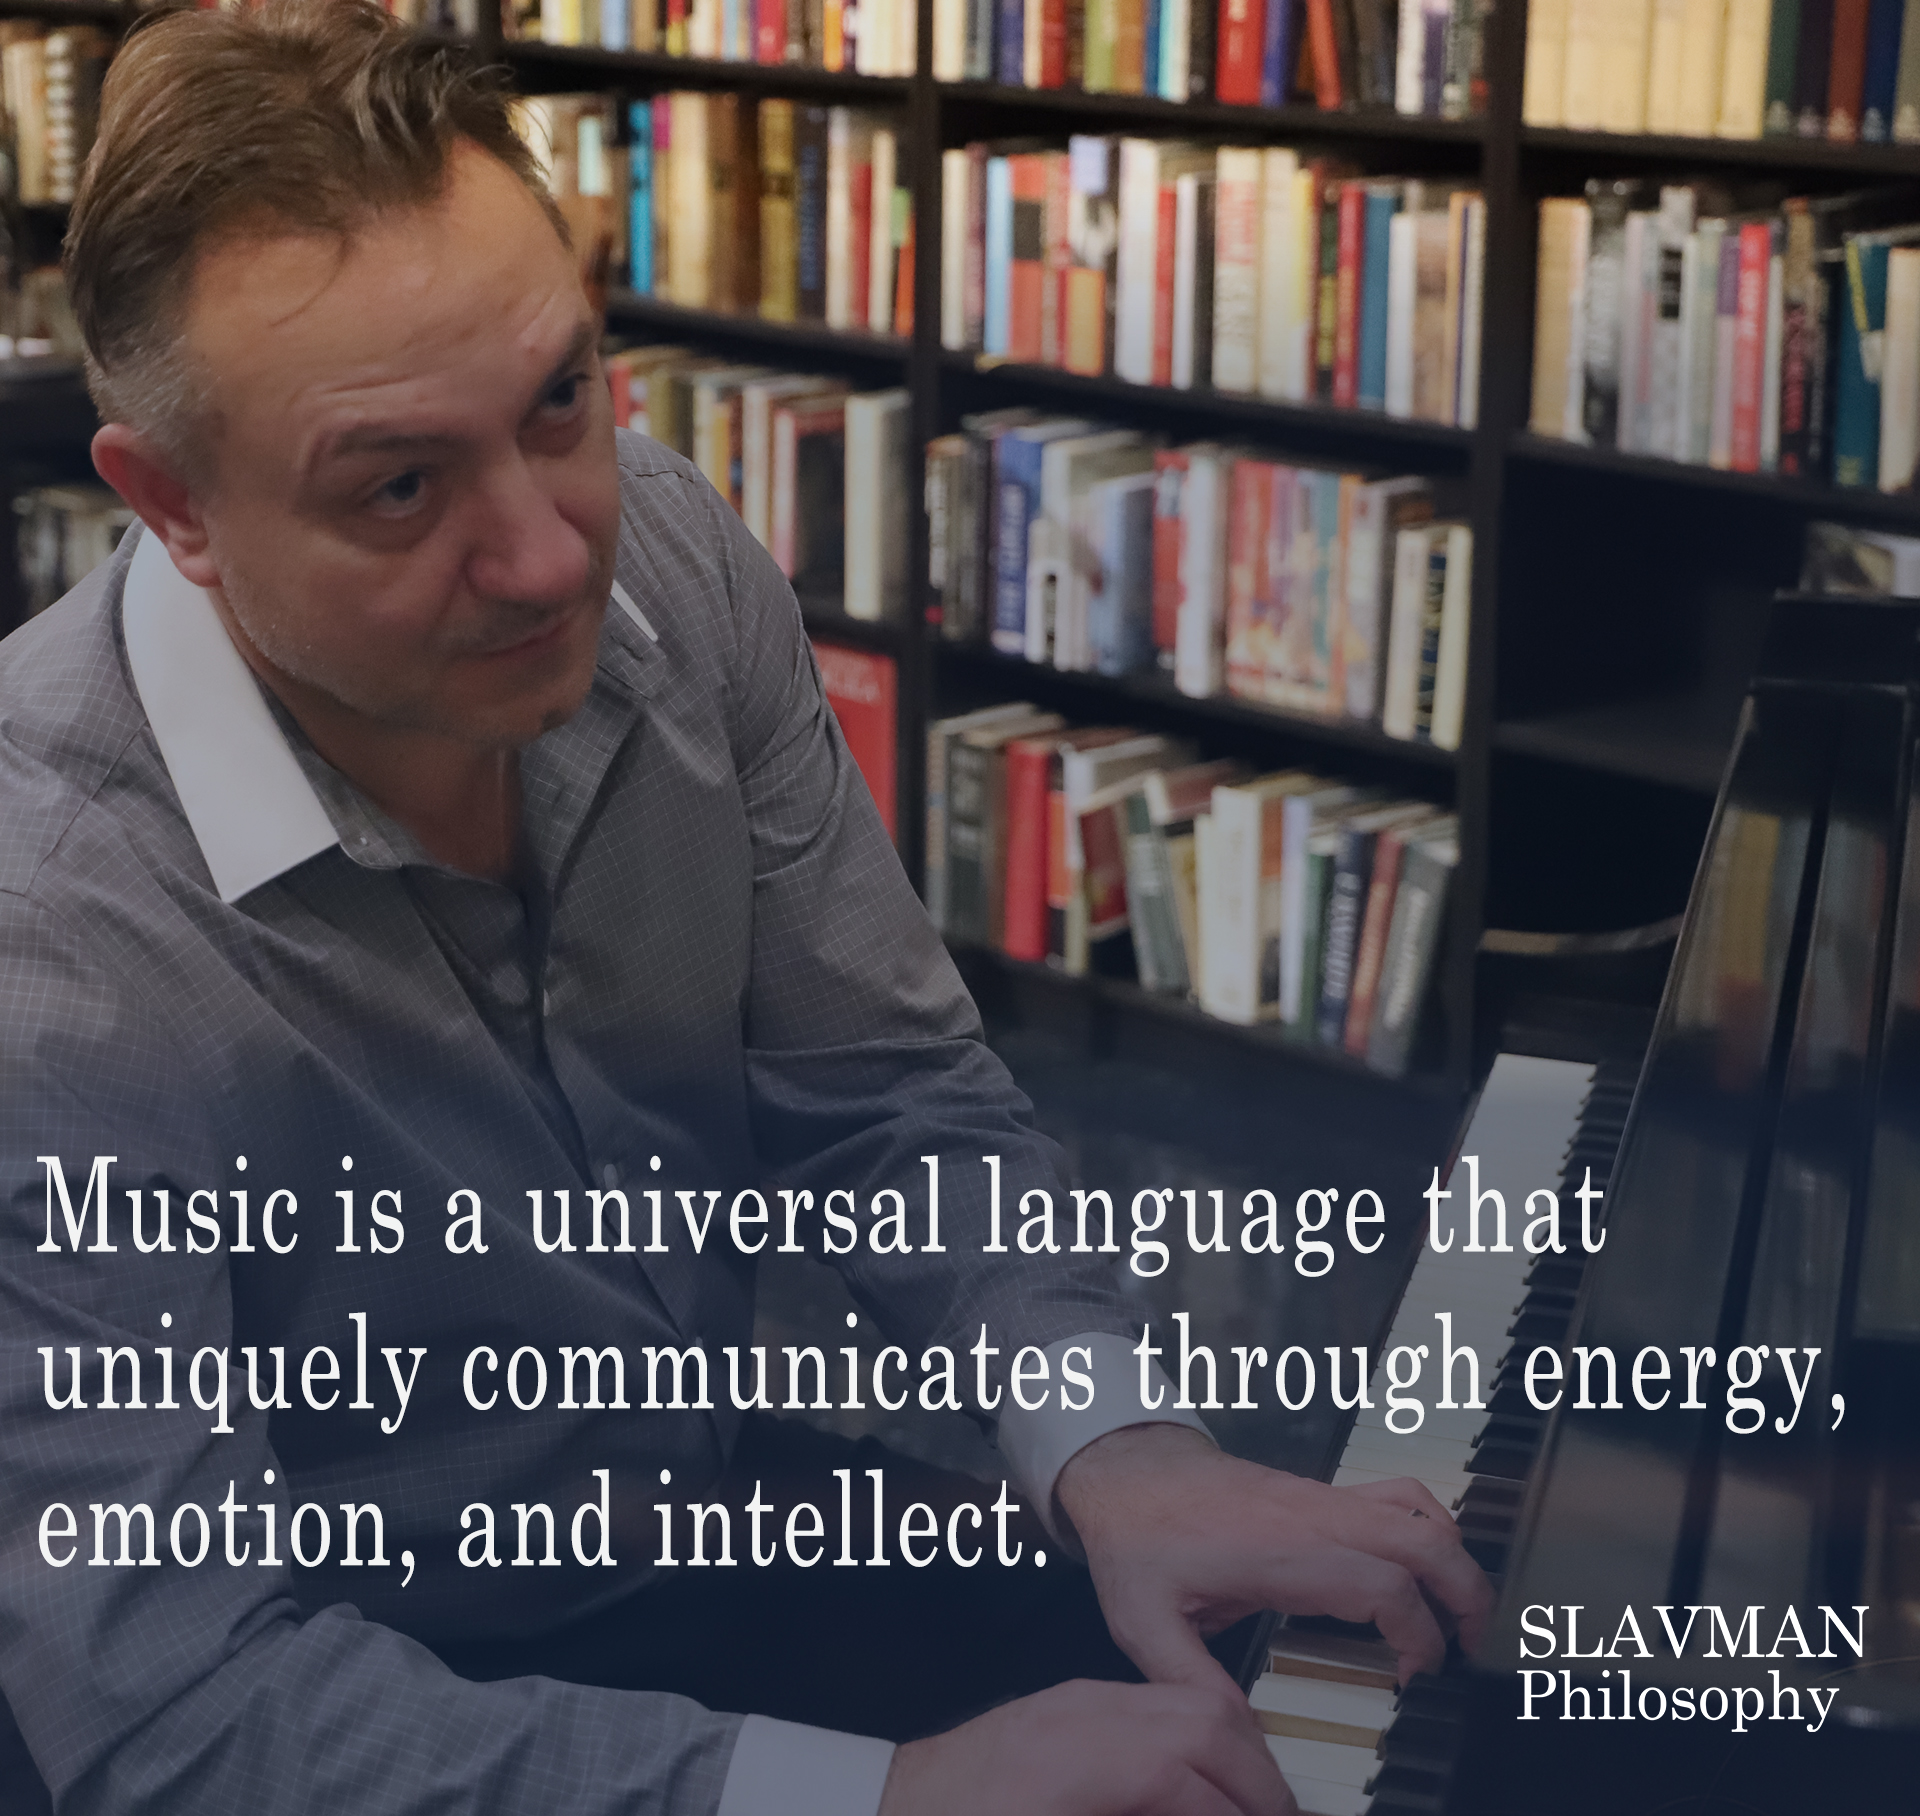 music-slavman-philosophy.jpg